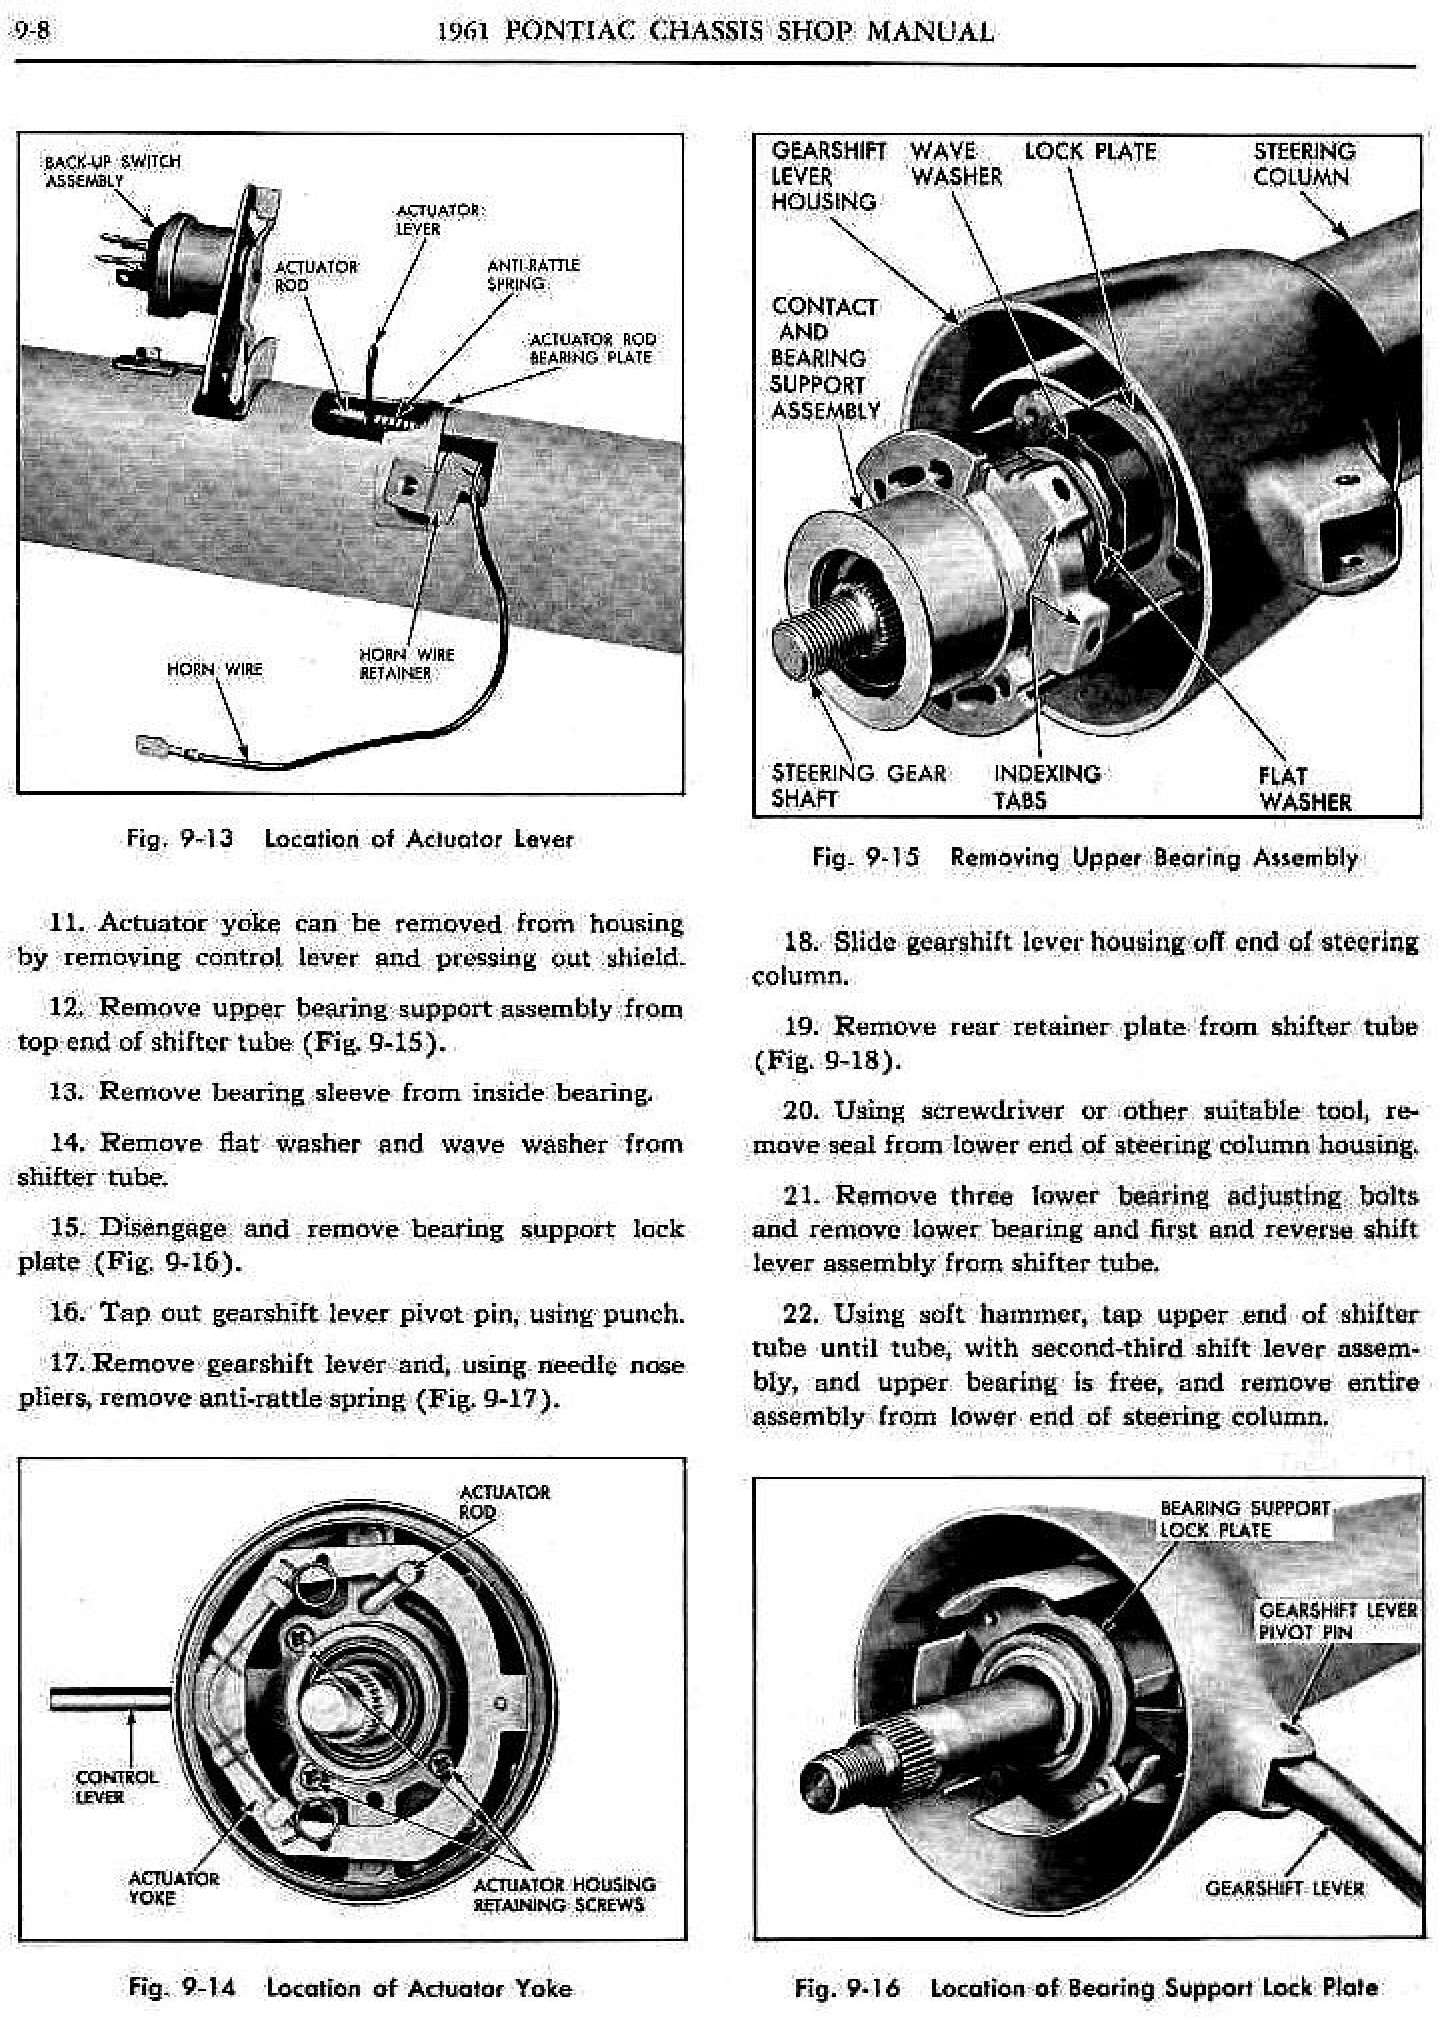 1961 Pontiac Shop Manual- Steering Page 8 of 22